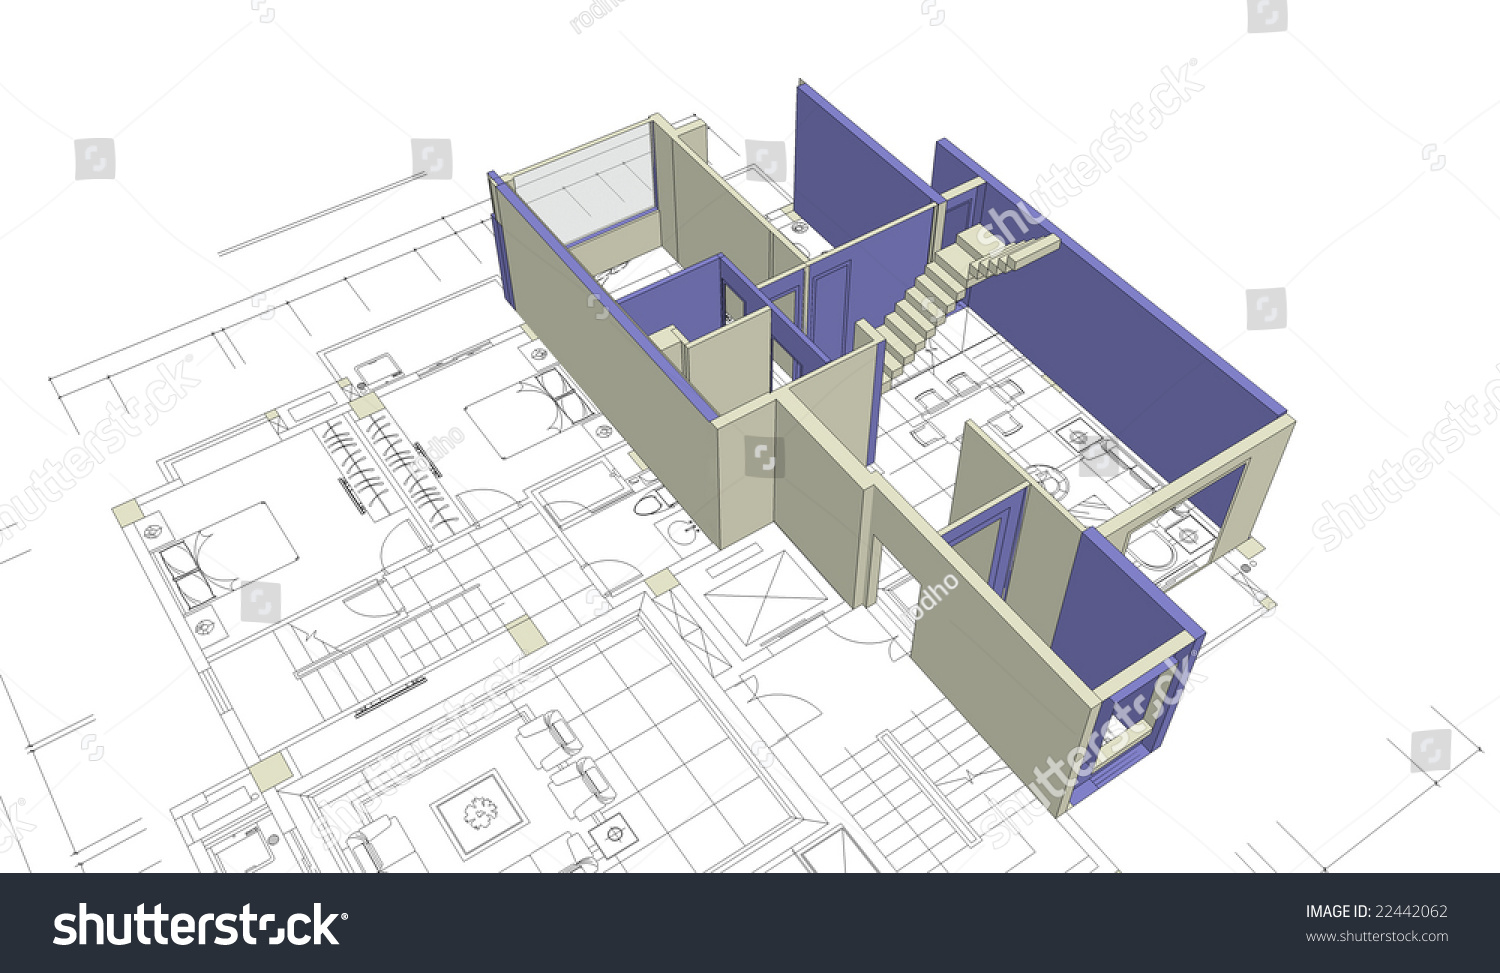 Architecture Blueprints 3d unfinished 3d house mockup on top stock illustration 22442062